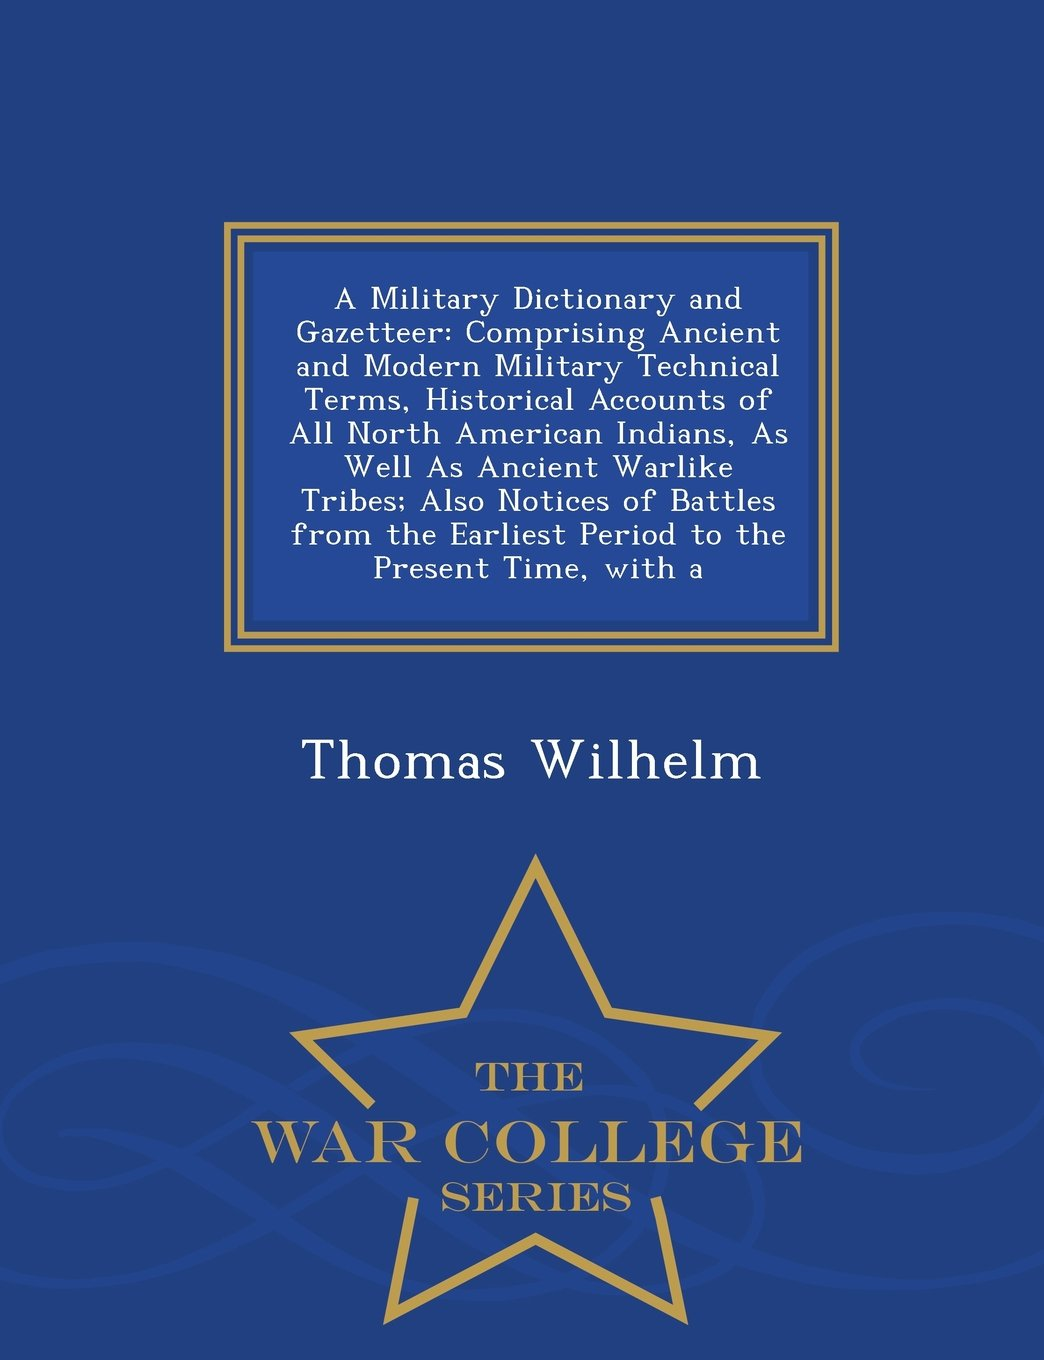 A Military Dictionary and Gazetteer: Comprising Ancient and Modern Military Technical Terms, Historical Accounts of All North American Indians, As ... to the Present Time, with a (Italian Edition) pdf